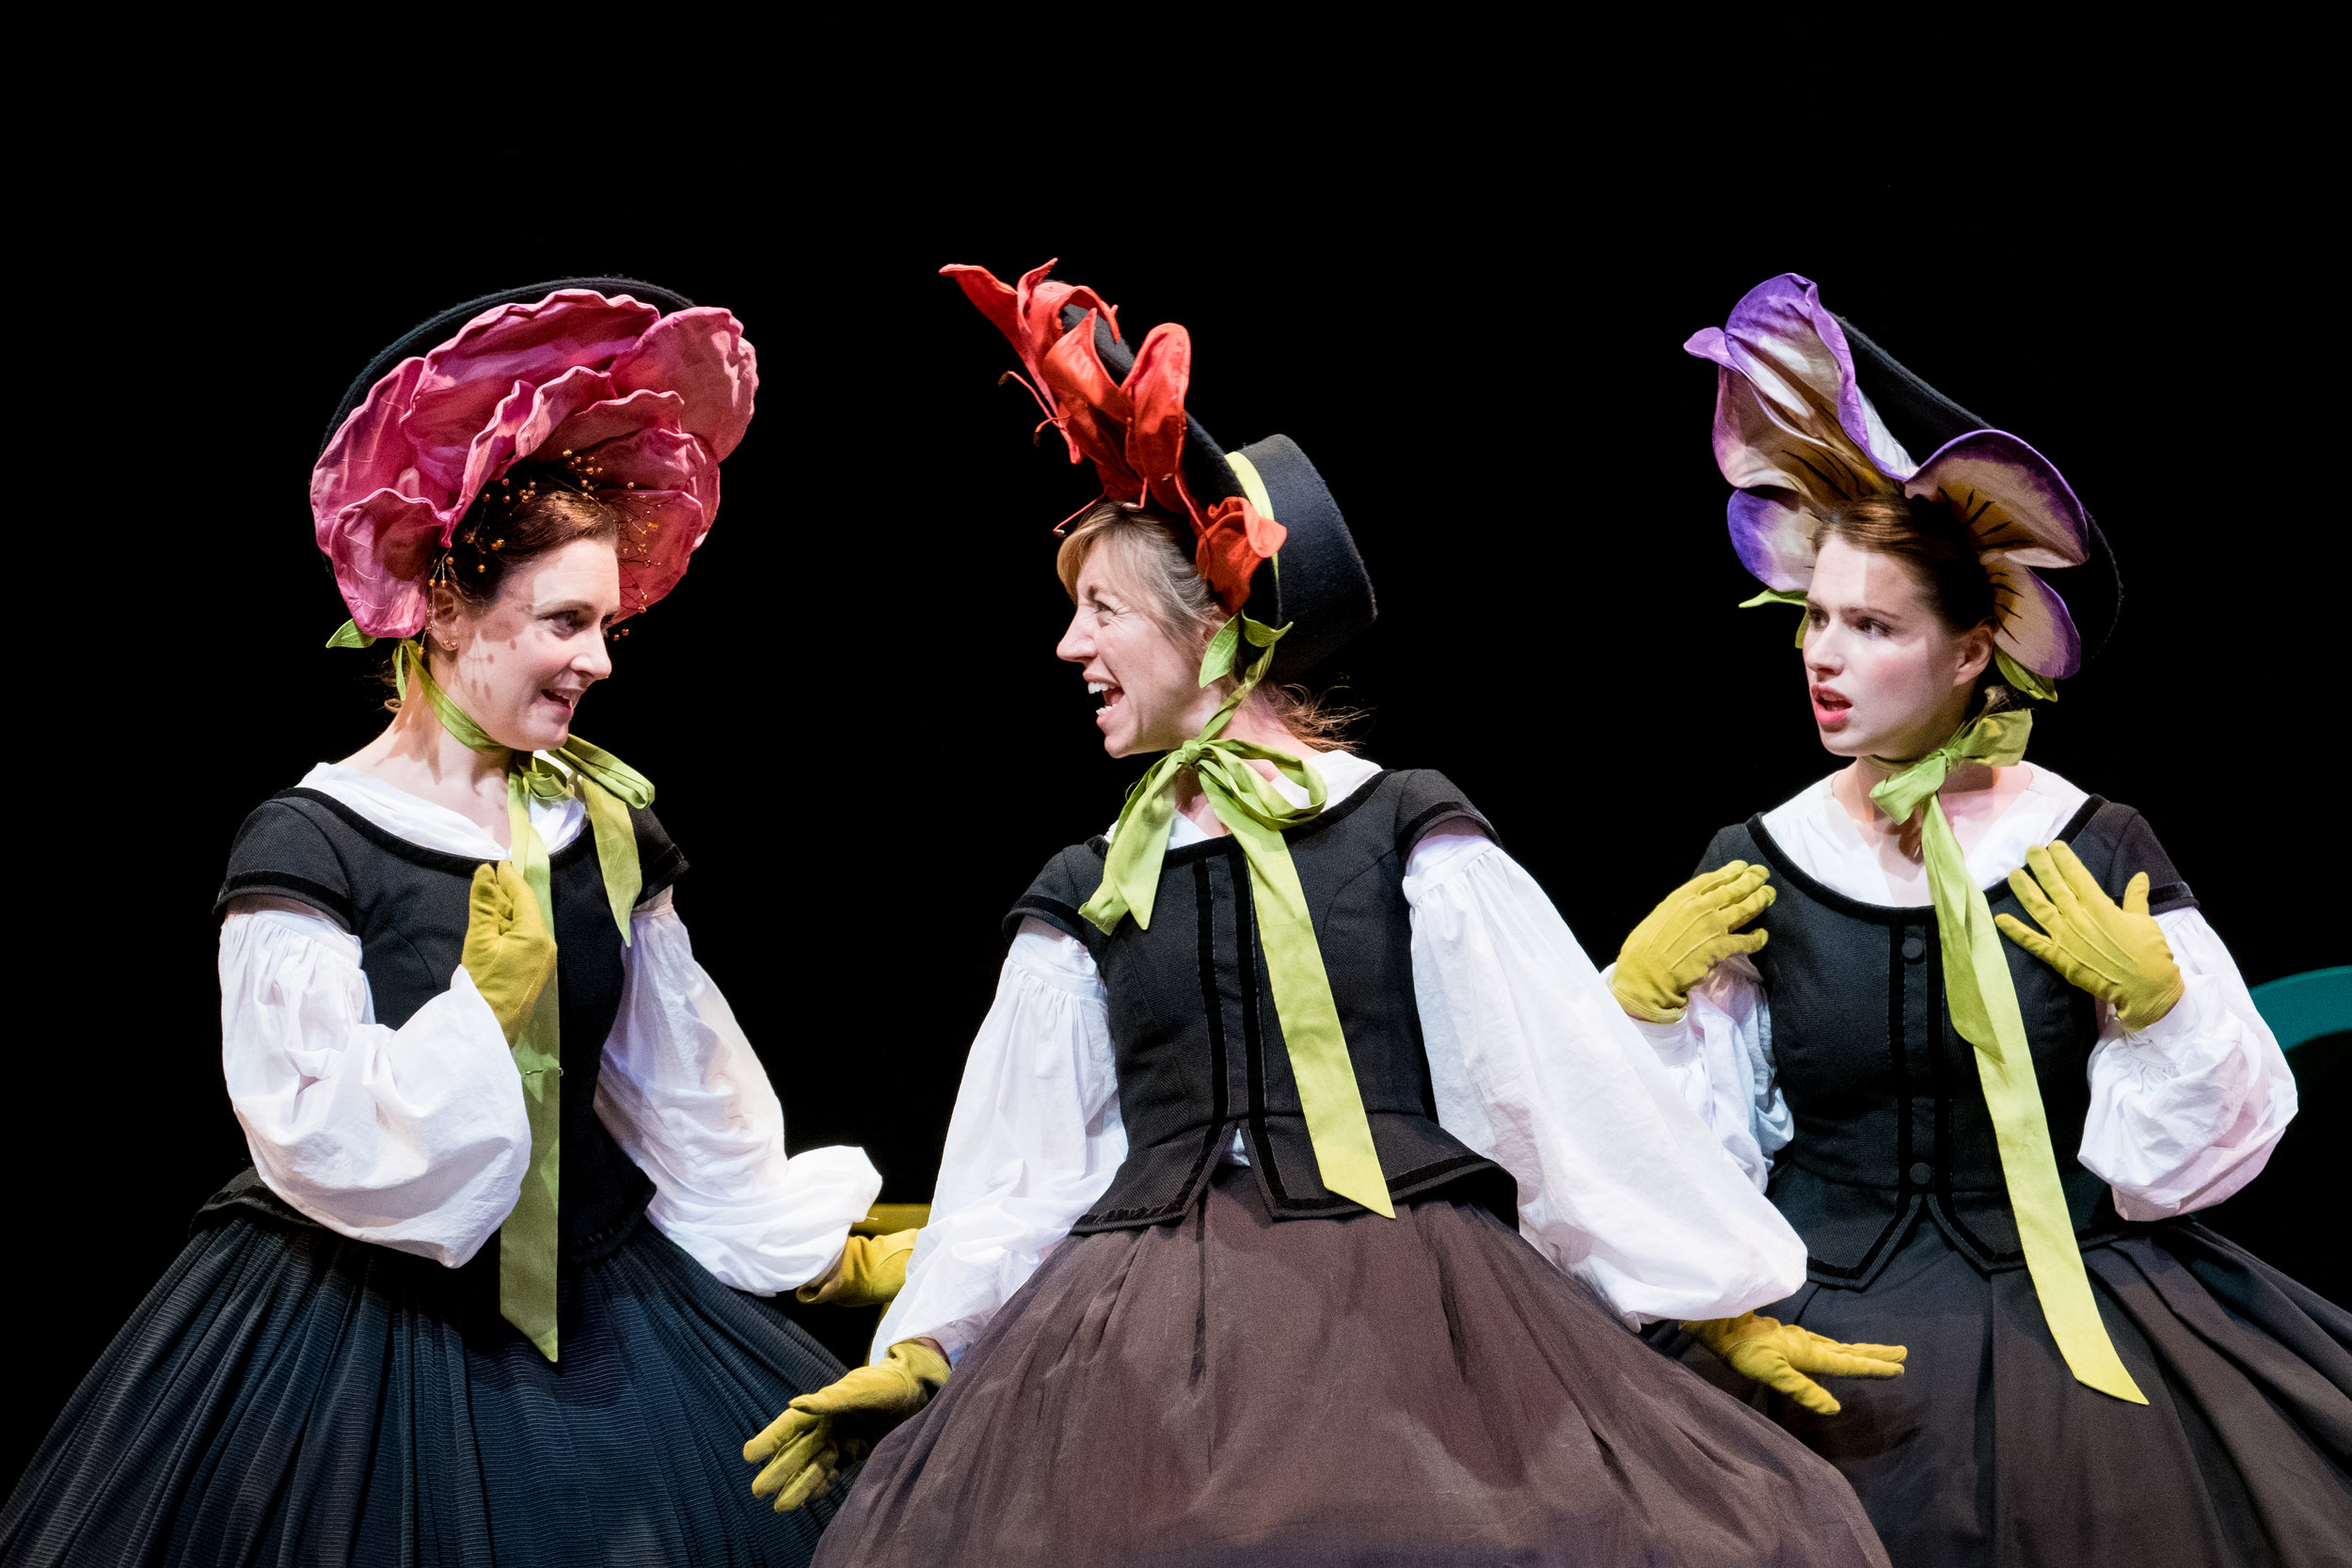 Barbara Hockaday, Nancy Sullivan & Charlotte Miranda Smith in Alice in Wonderland, Storyhouse, composed by Jude Obermüller (photo by Mark McNulty)